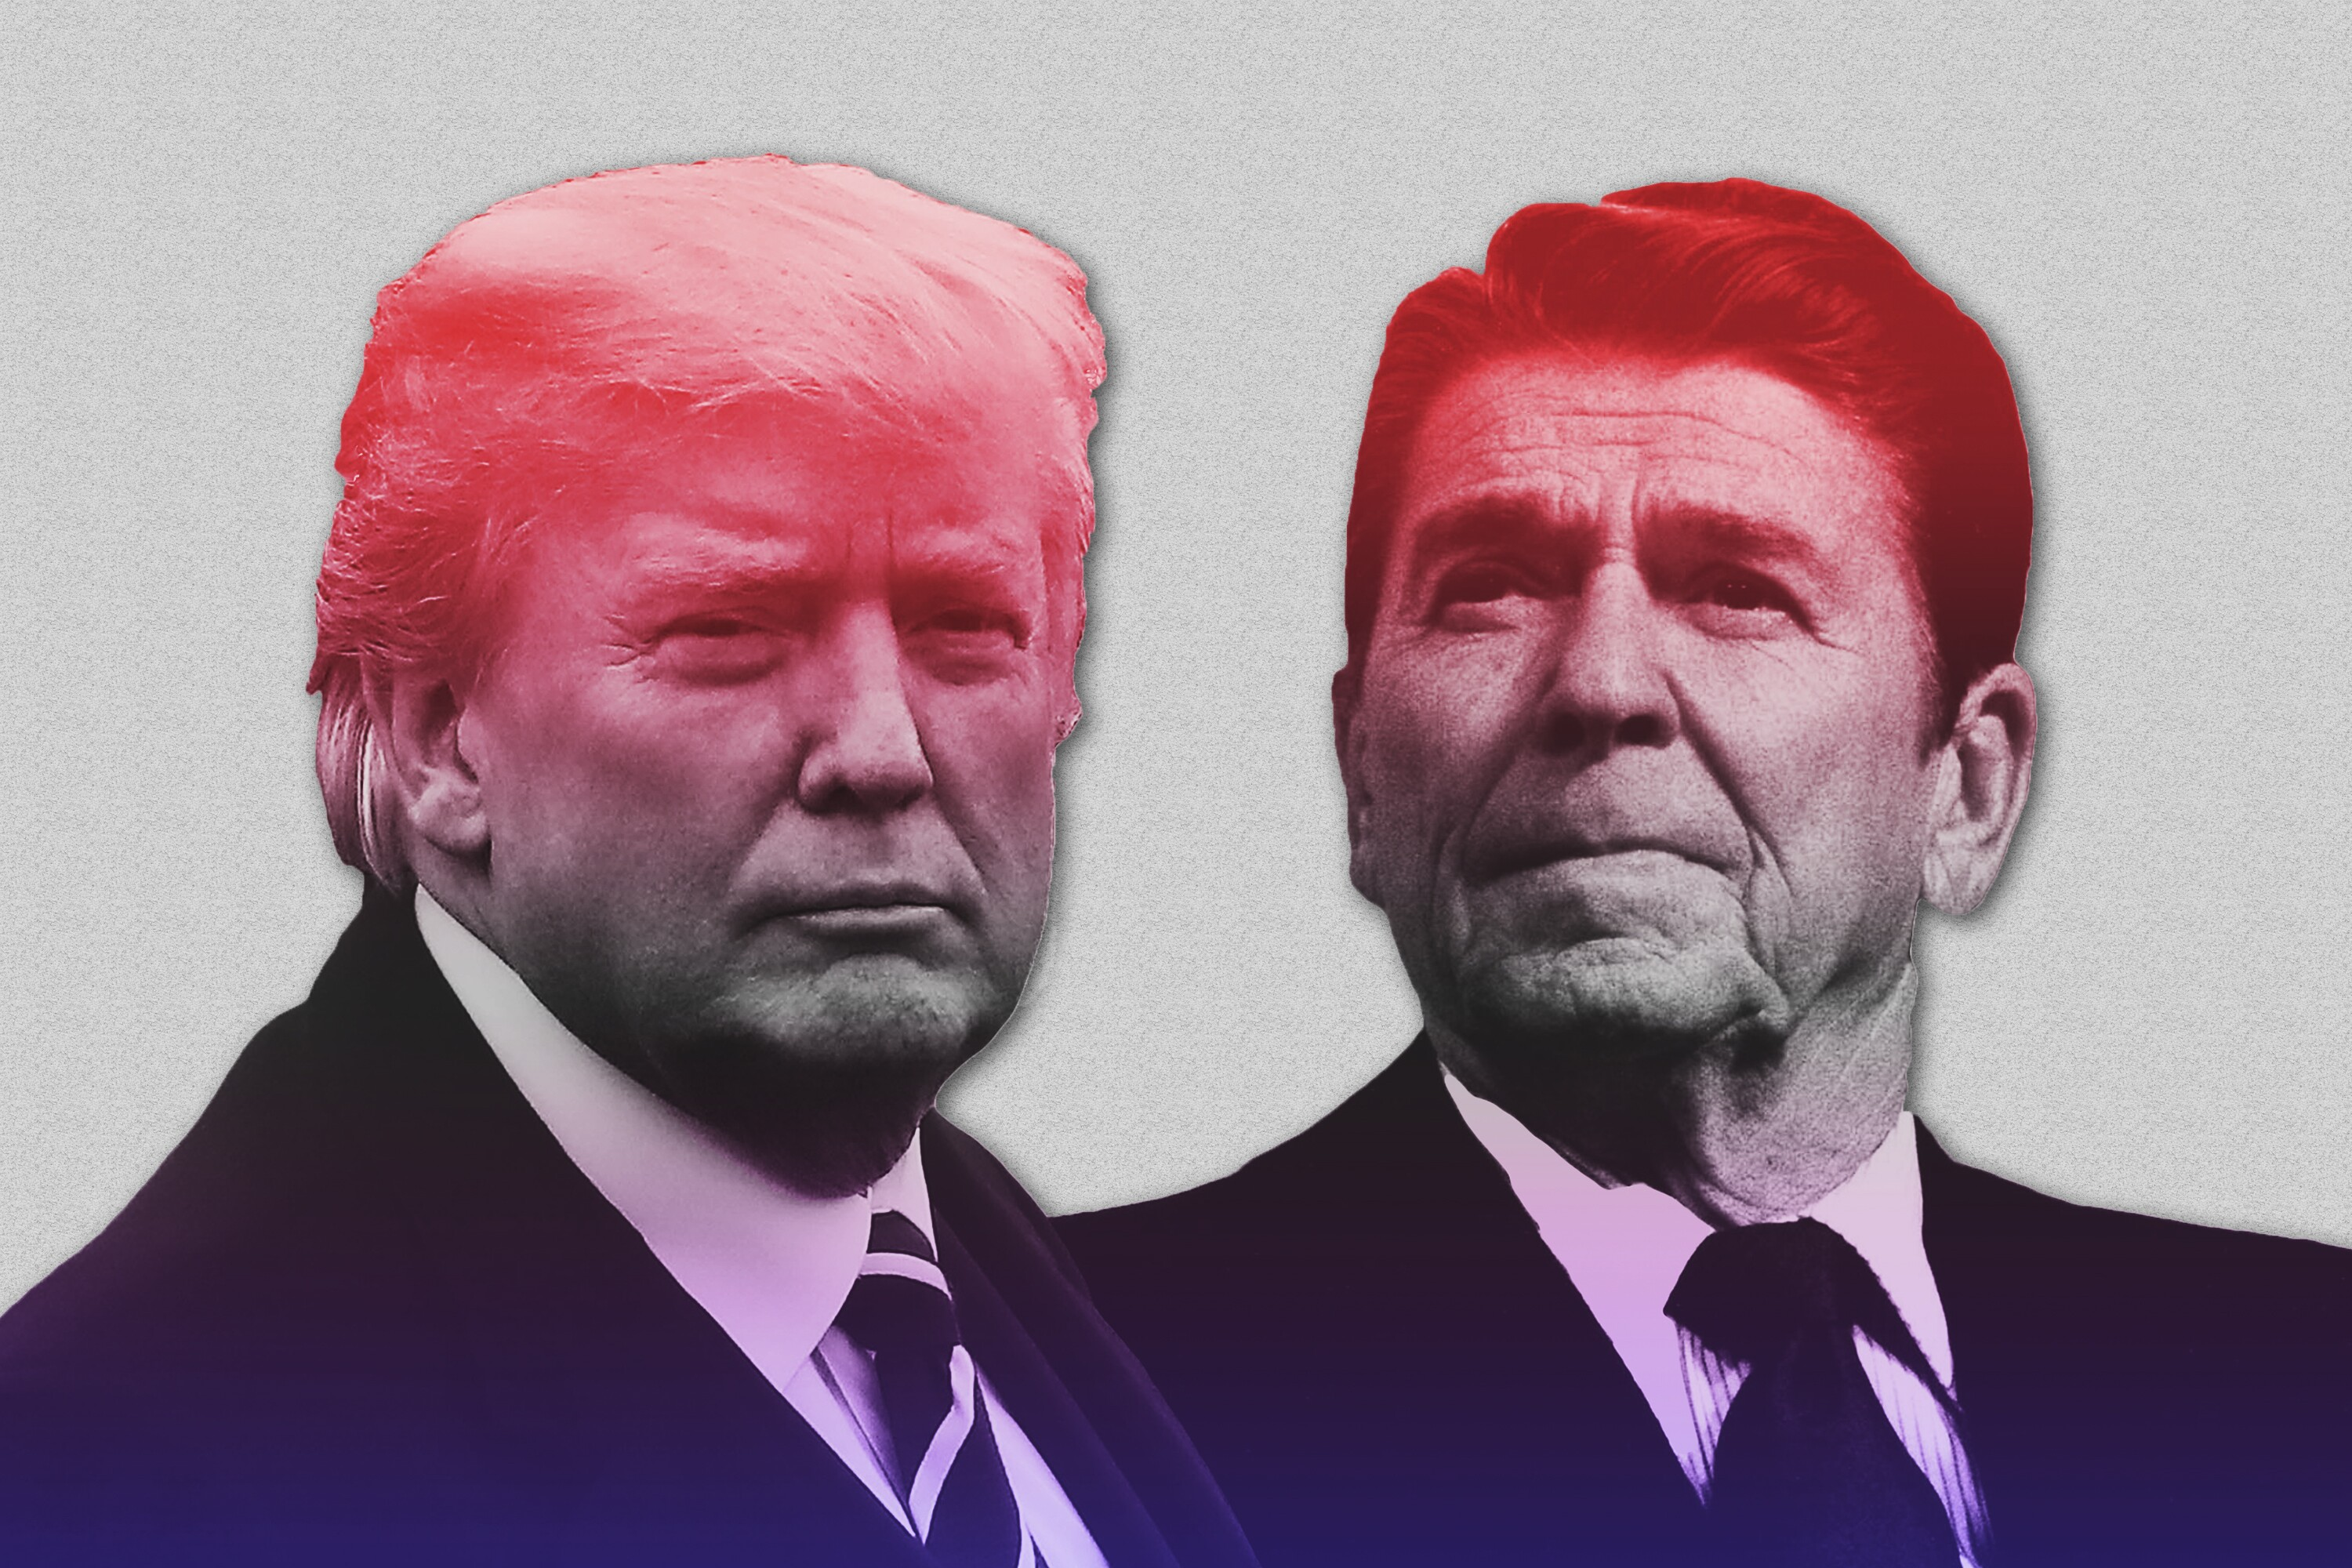 donald trump will not be ronald reagan